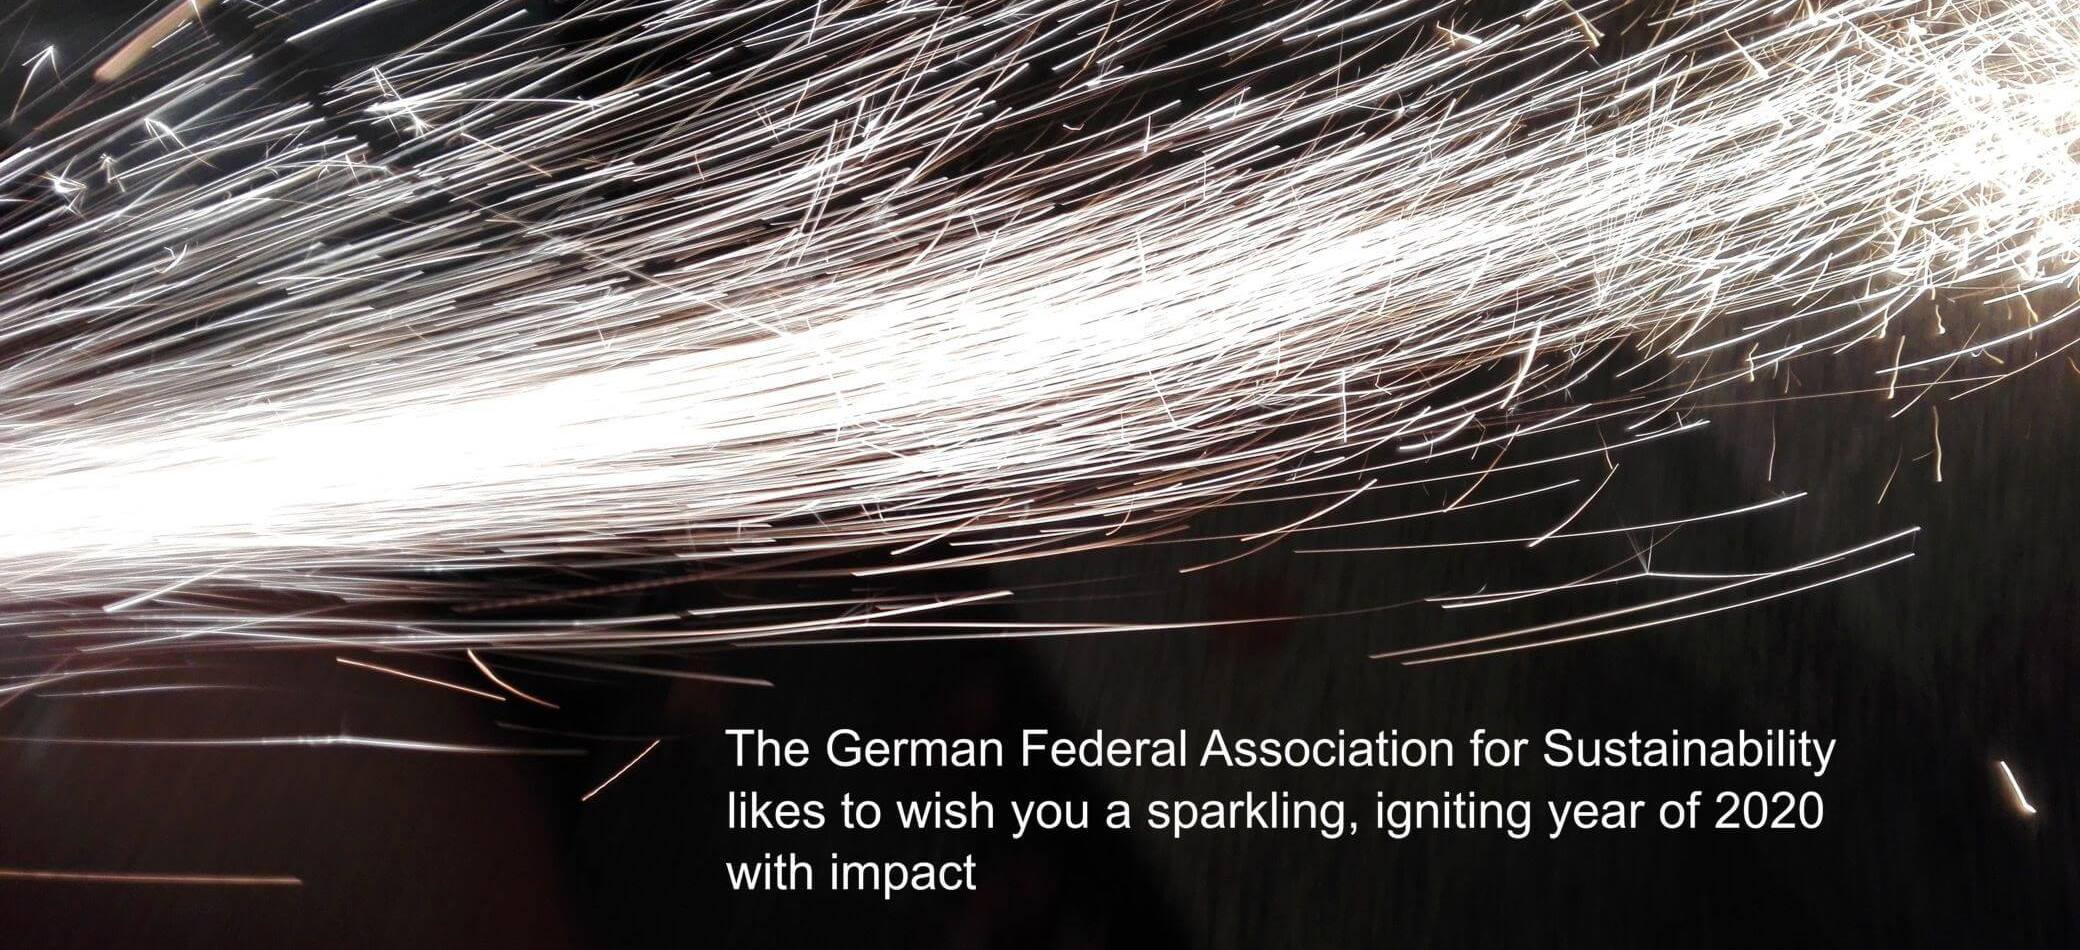 The German Federal Association for Sustainability likes to wish a sparkling and igniting year of 2020 with impact